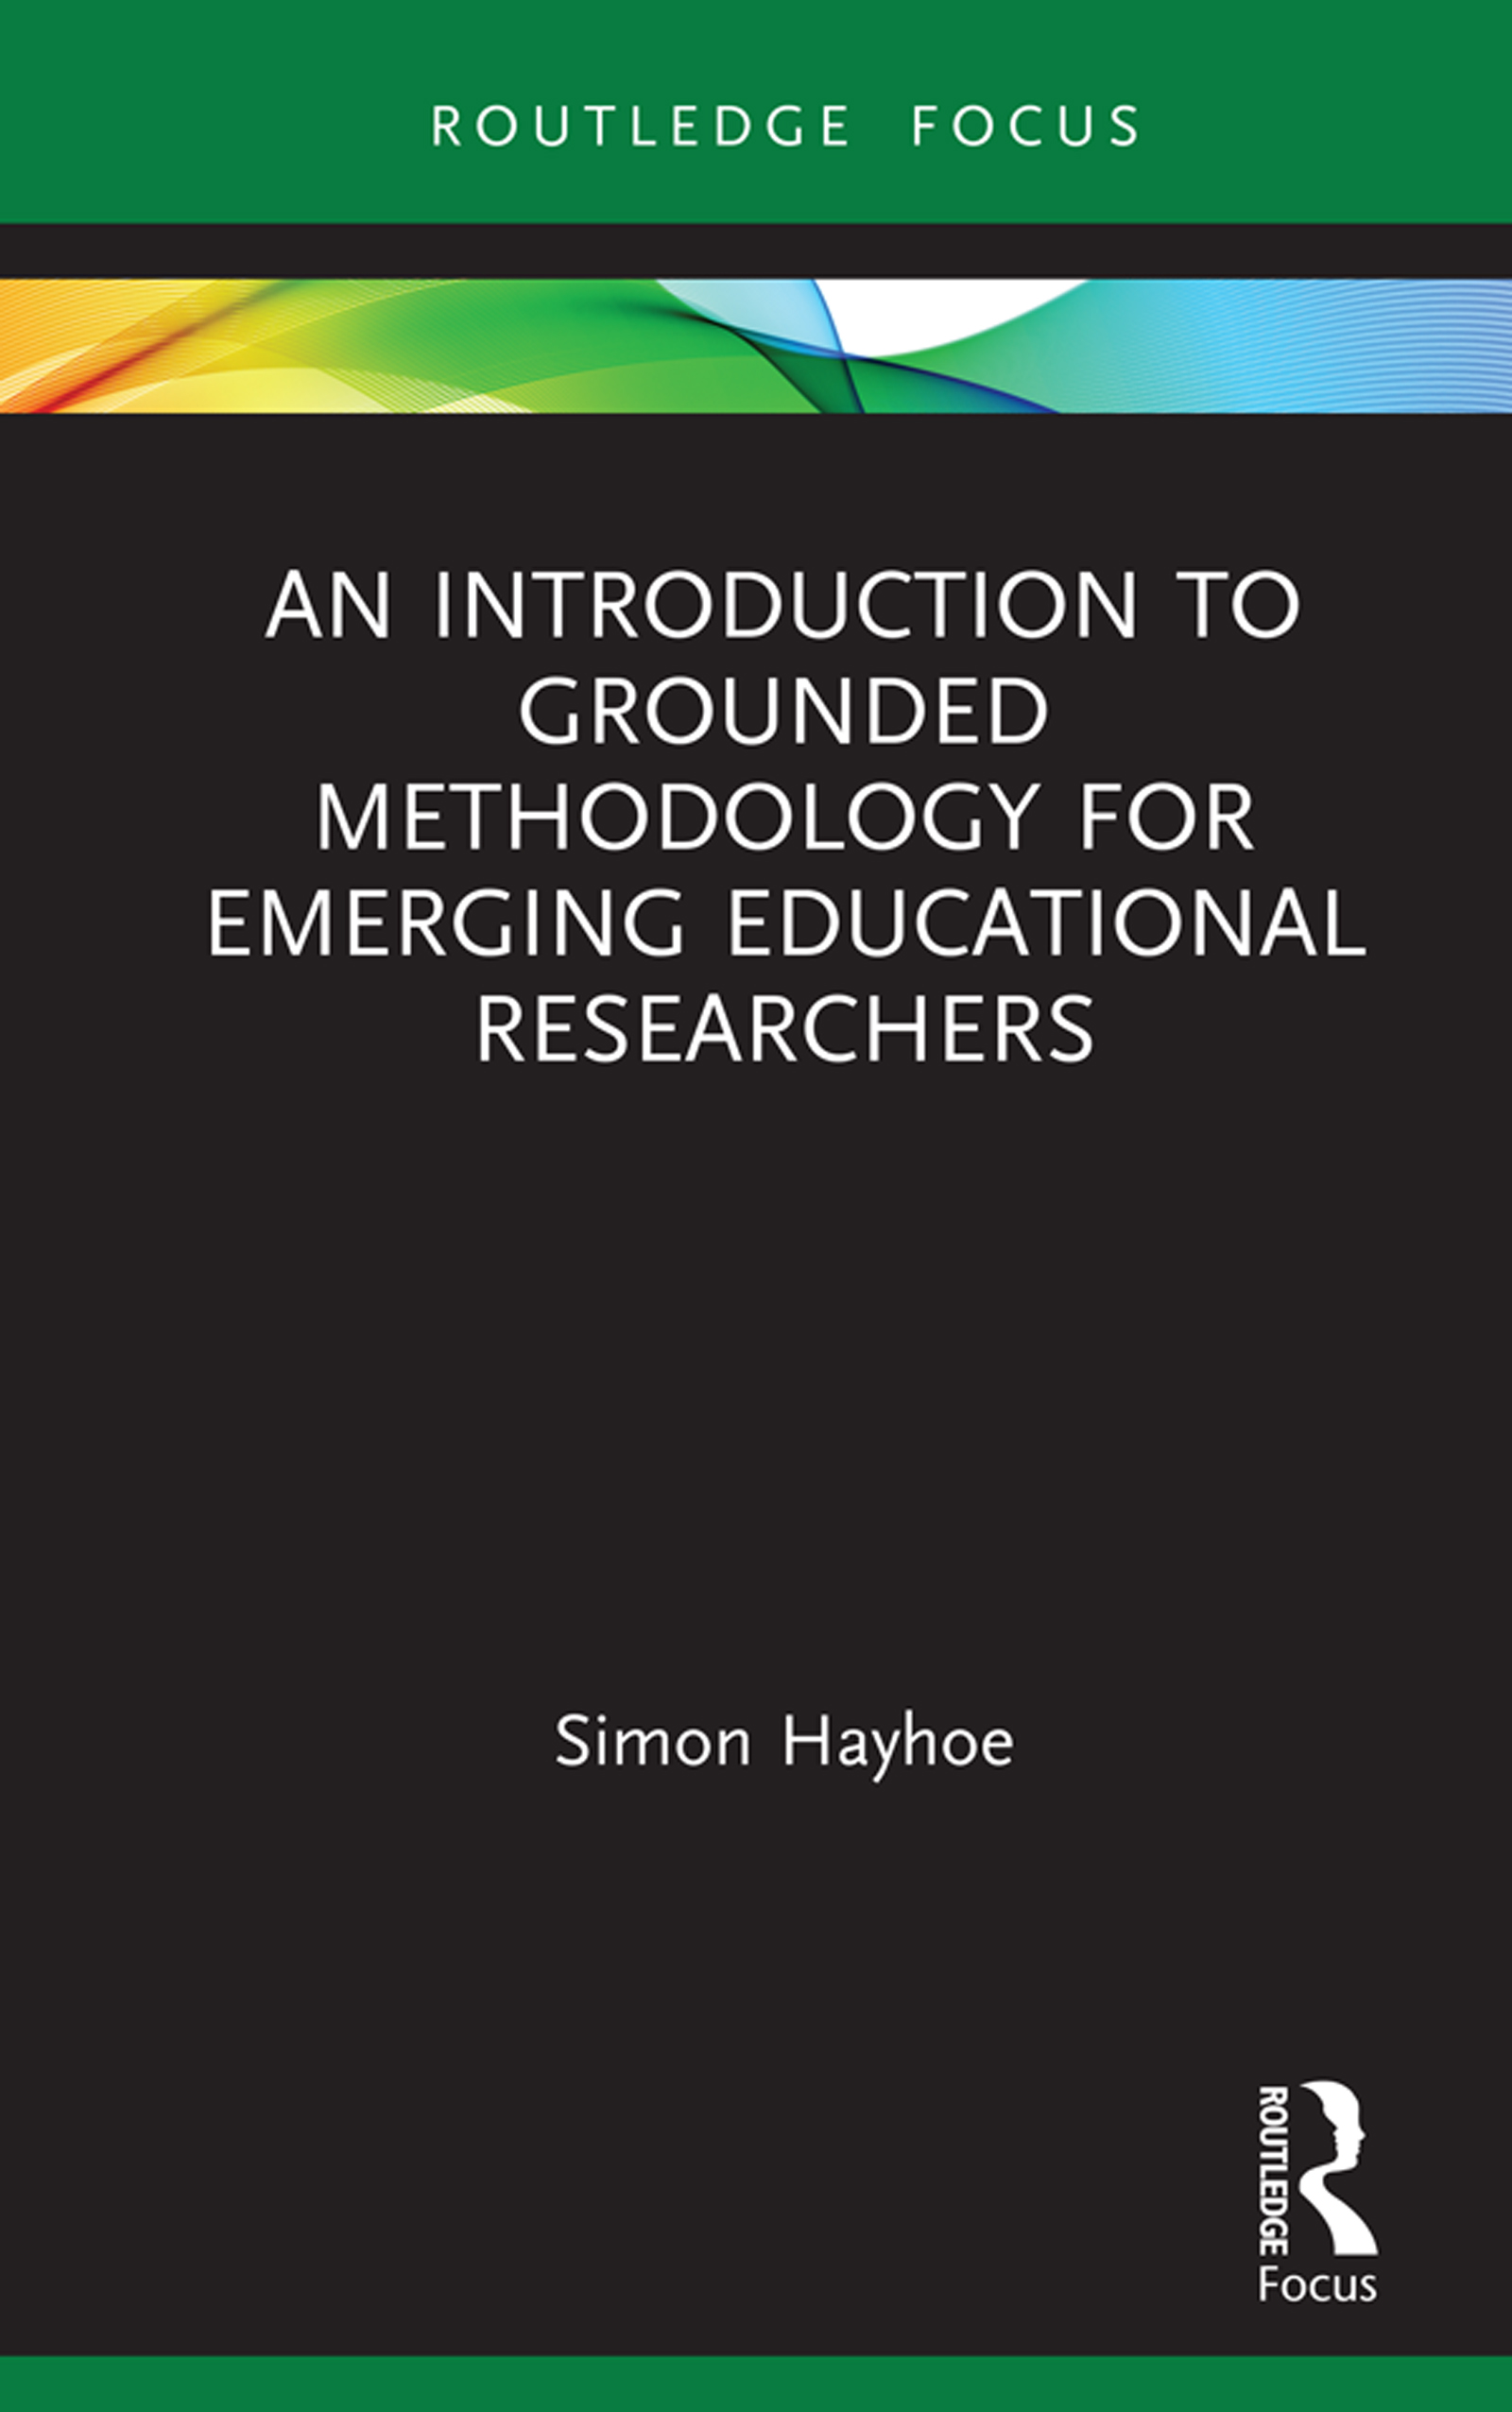 An Introduction to Grounded Methodology for Emerging Educational Researchers